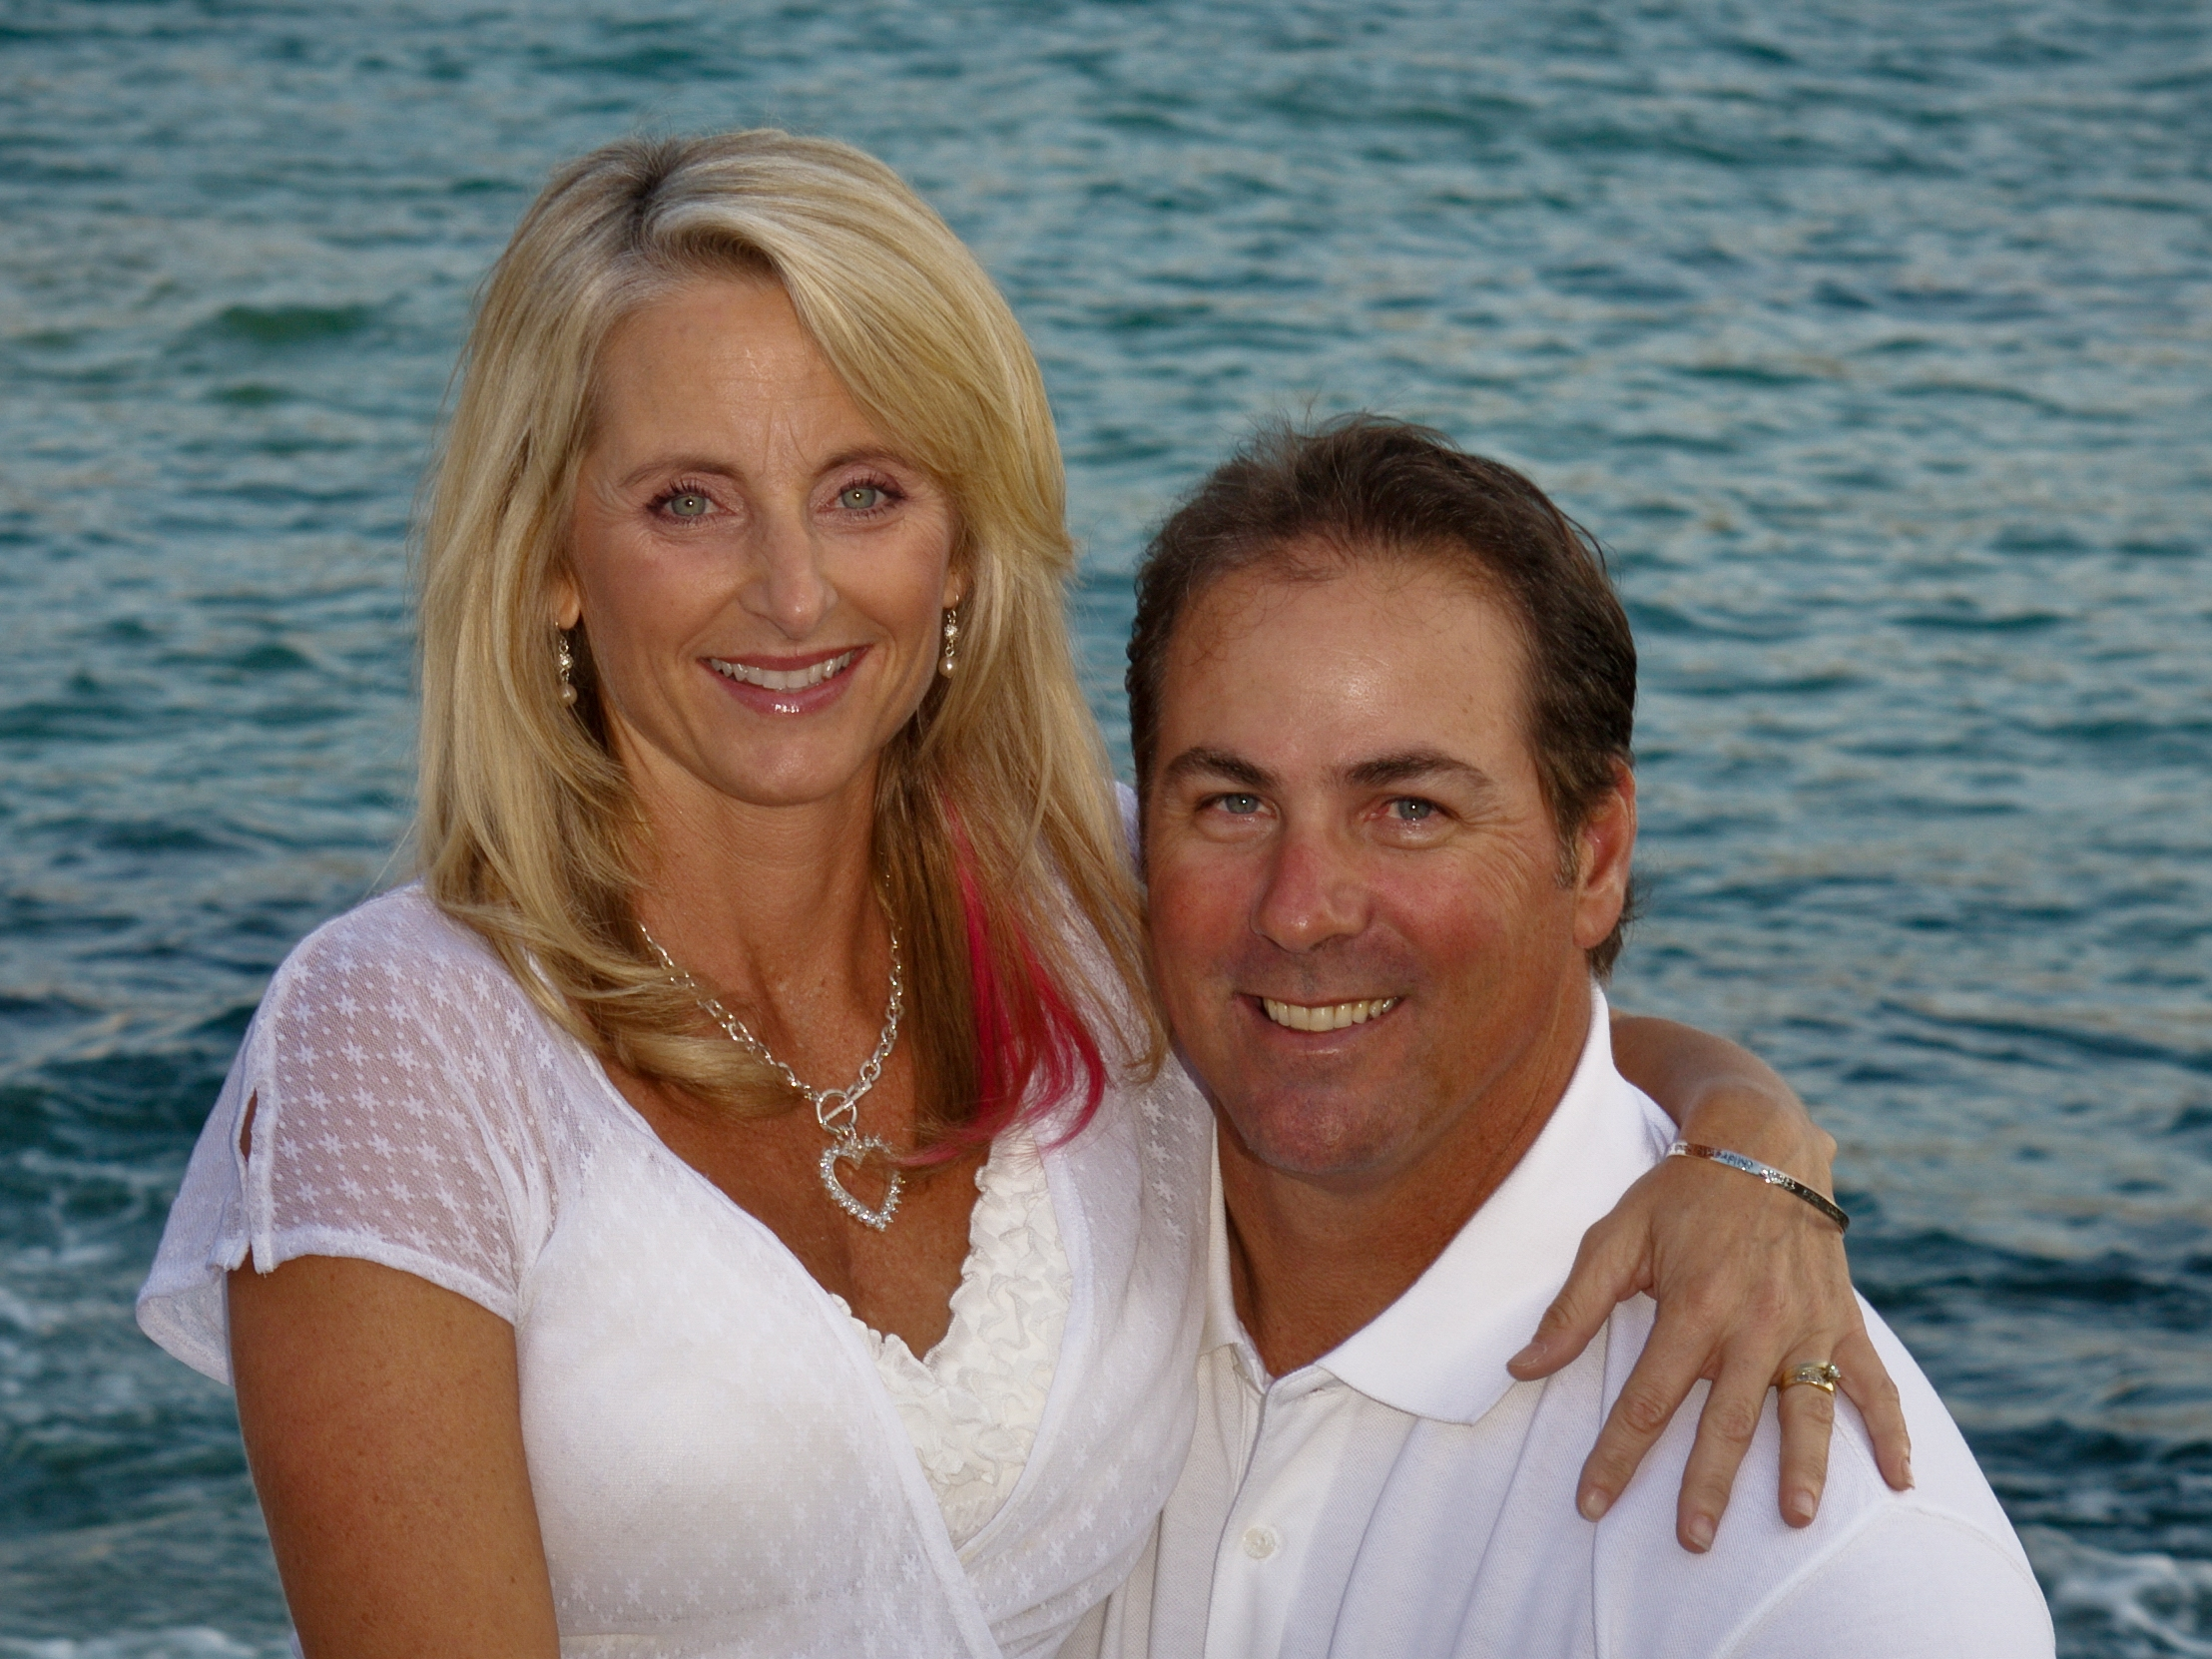 5 Ways To Keep Your Pro Sports Marriage Healthy The